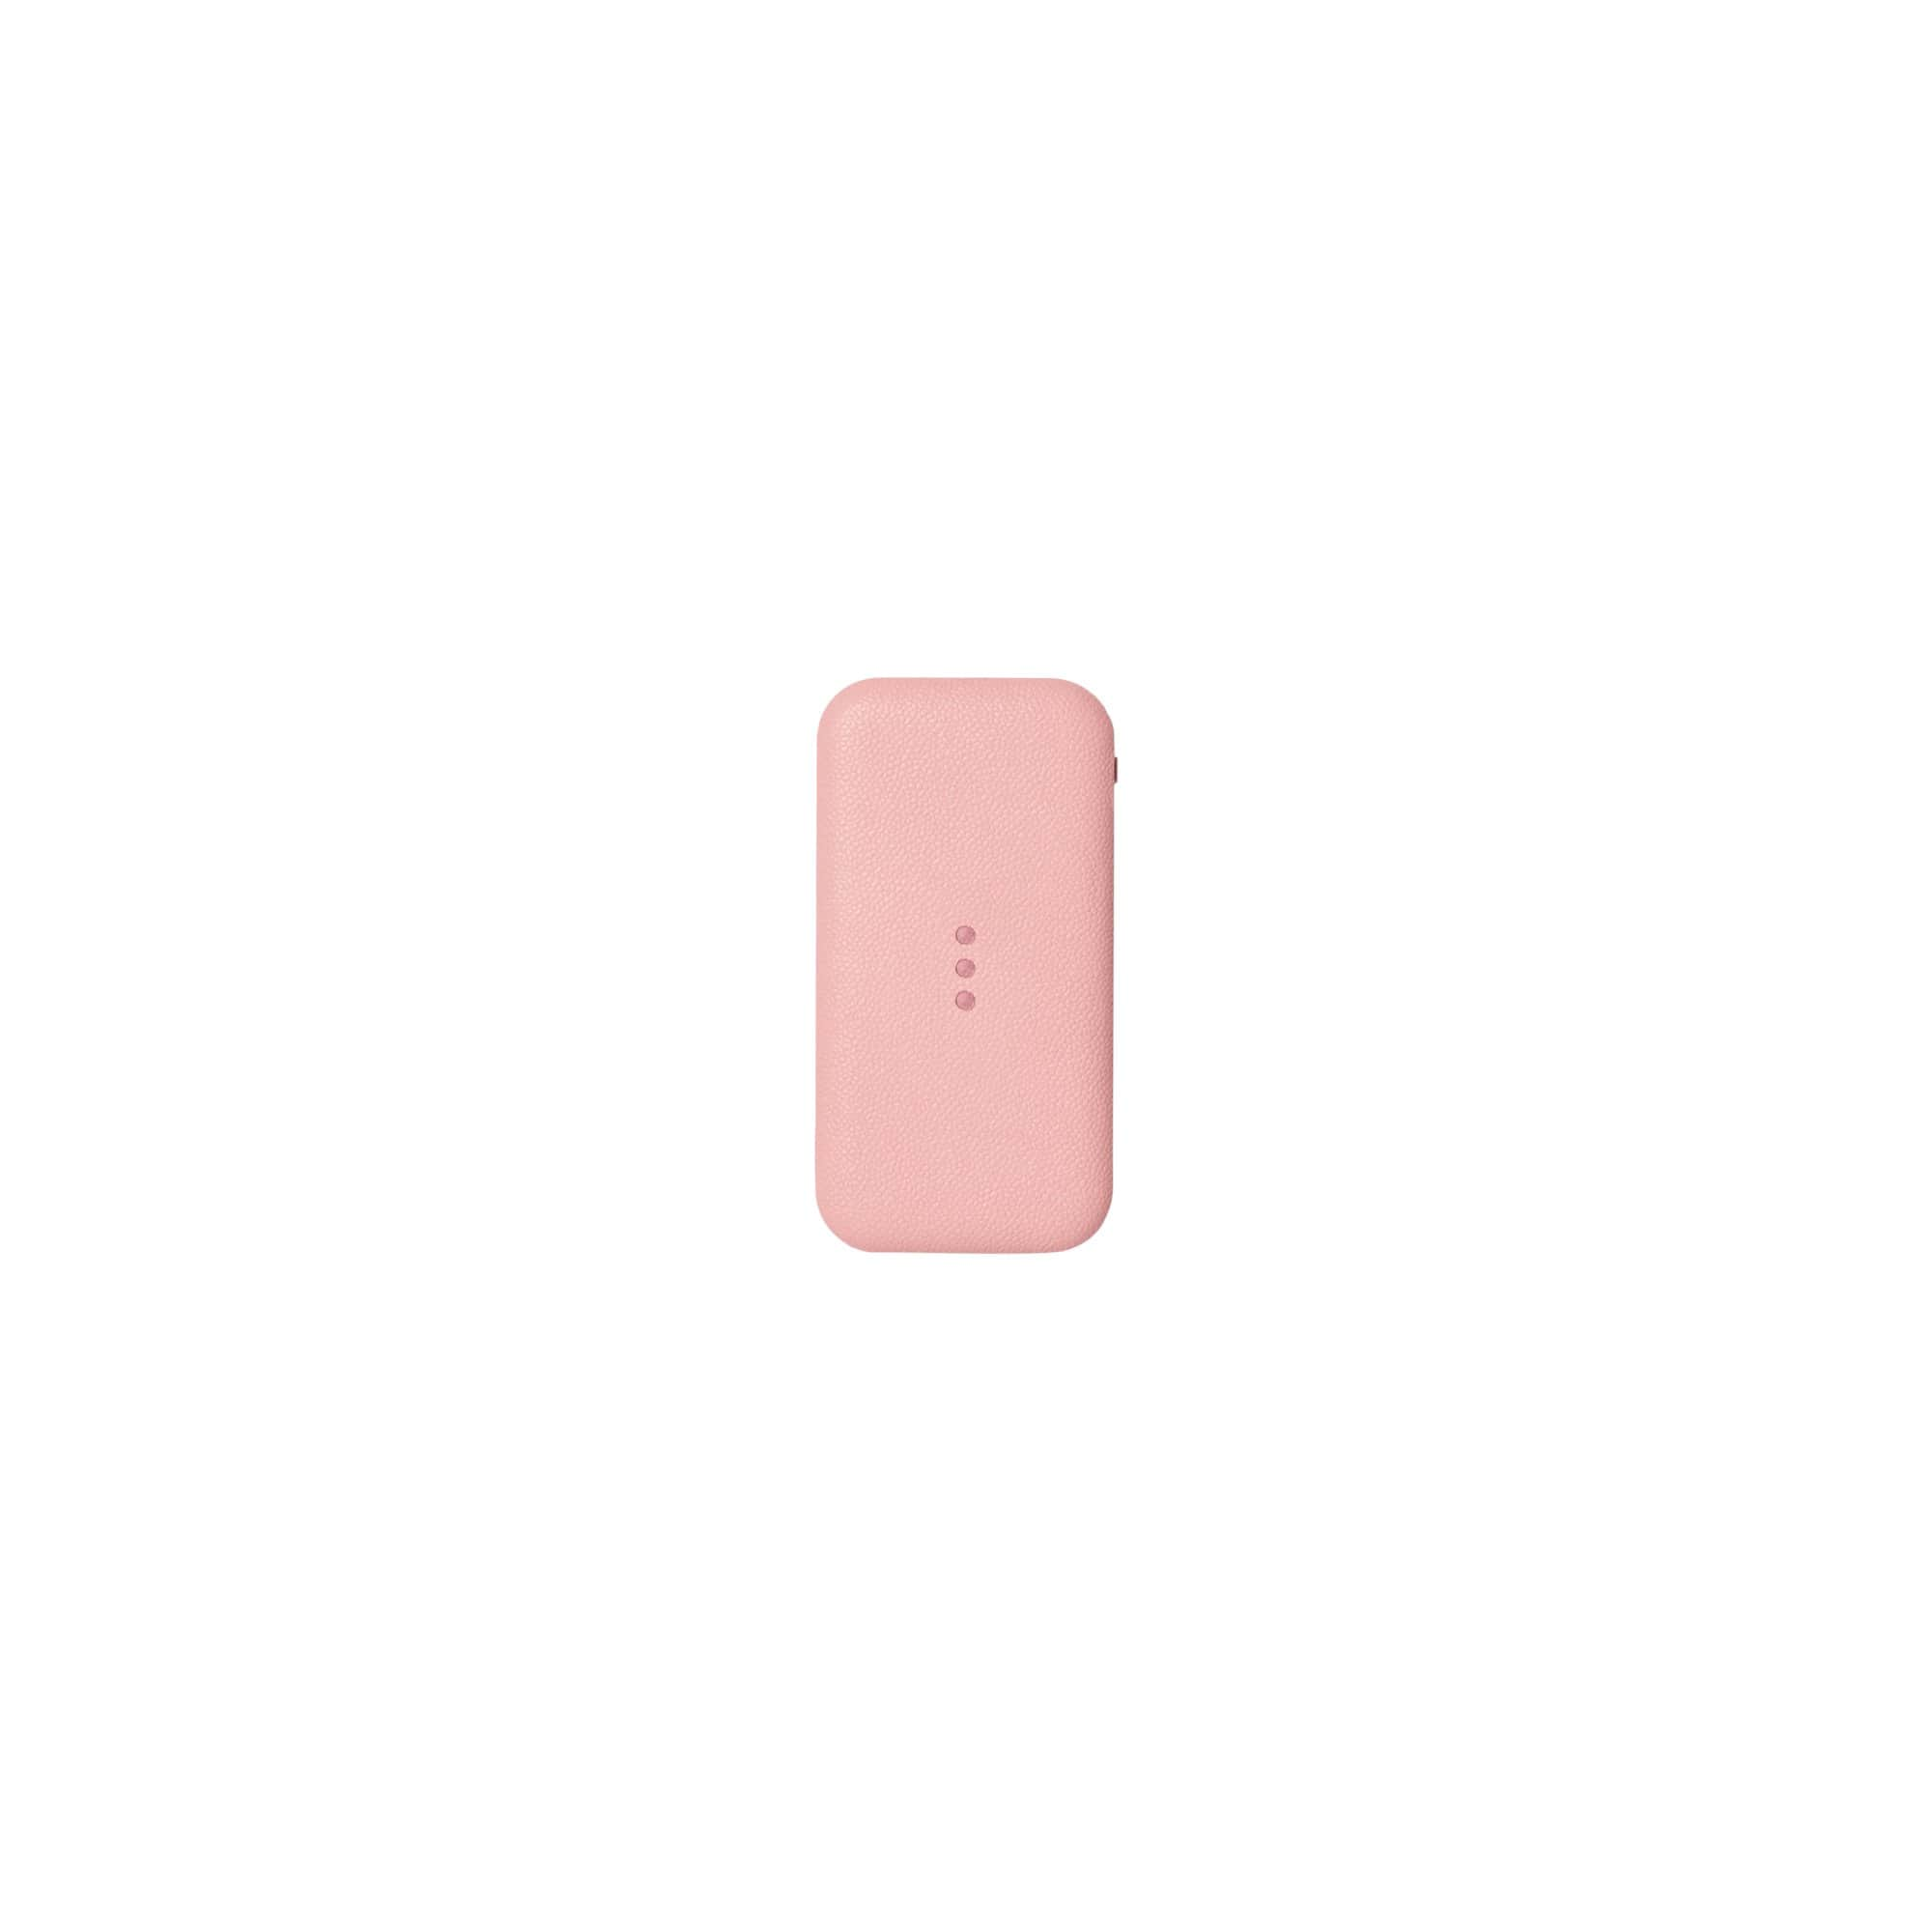 CARRY Power Bank in Dusty Rose